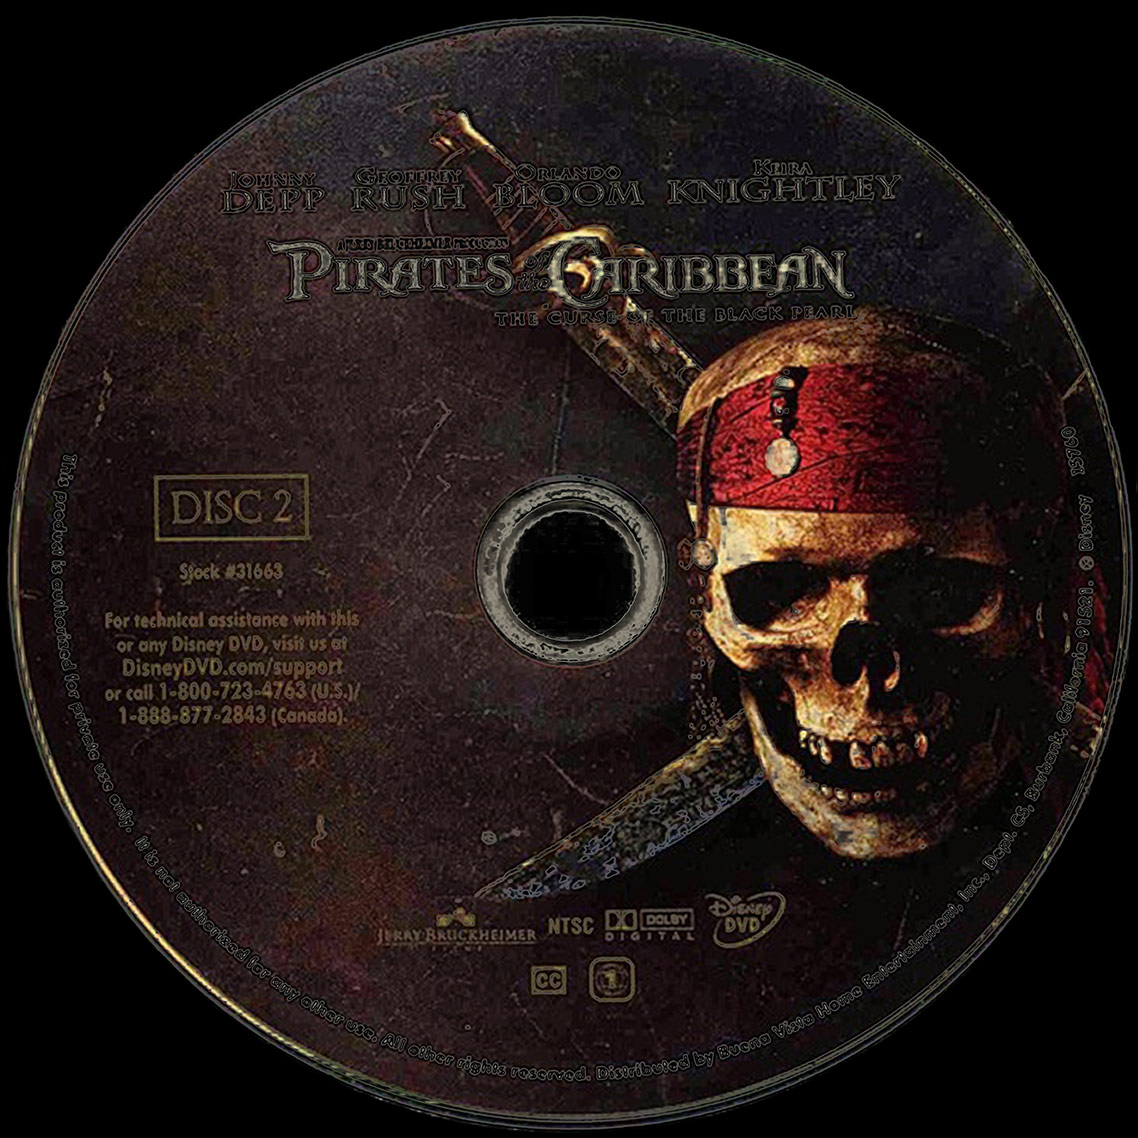 PIRATES OF THE CARIBBEAN • THE CURSE OF THE BLACK PEARL • DVD Art